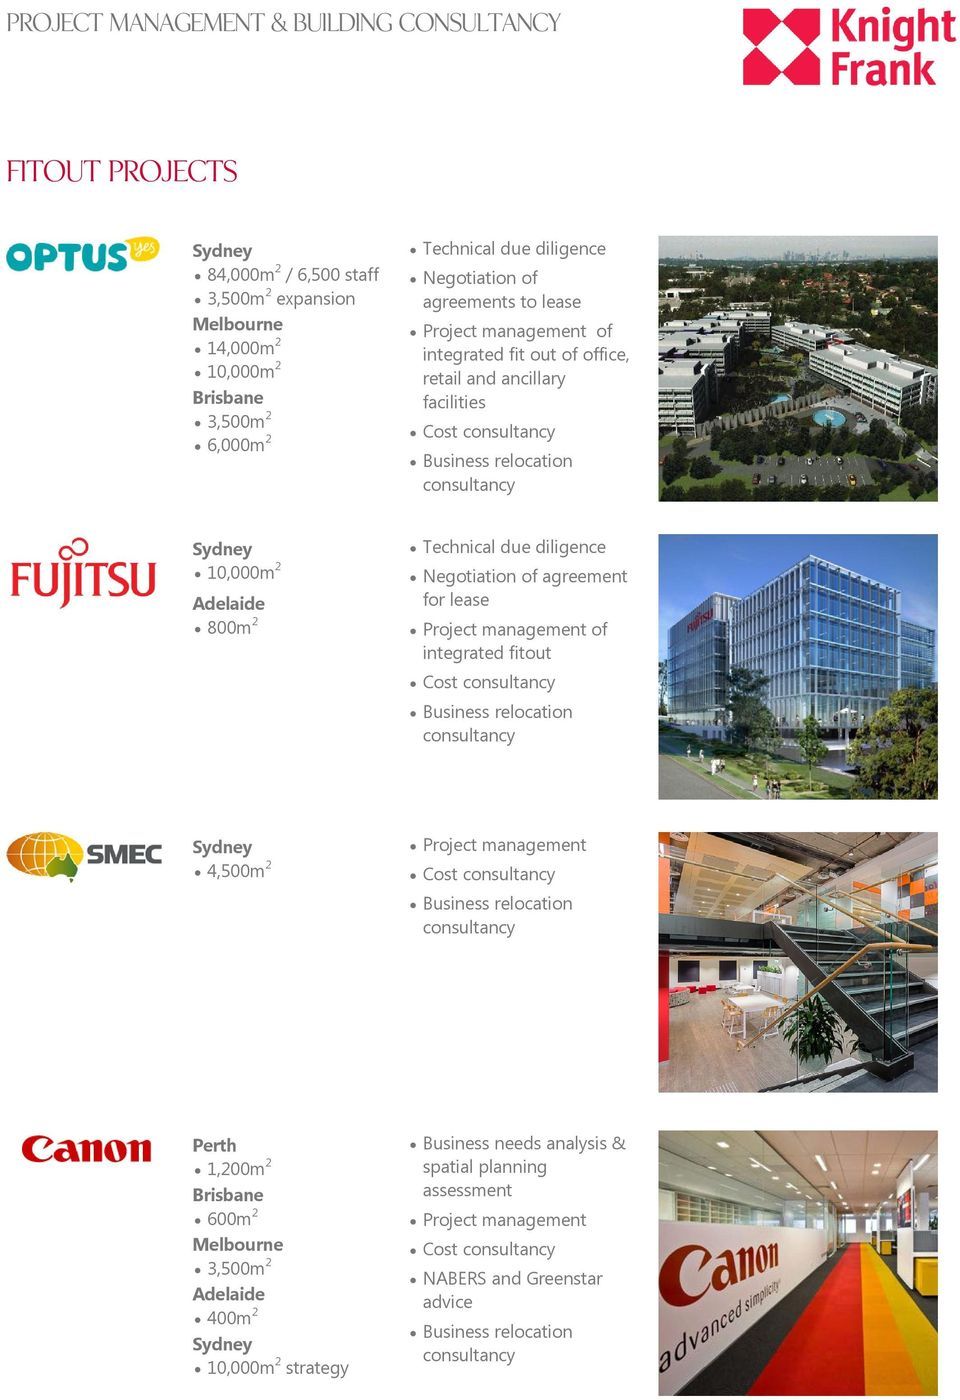 800m 2 Negotiation of agreement for lease of integrated fitout 4,500m 2 Perth 1,200m 2 600m 2 3,500m 2